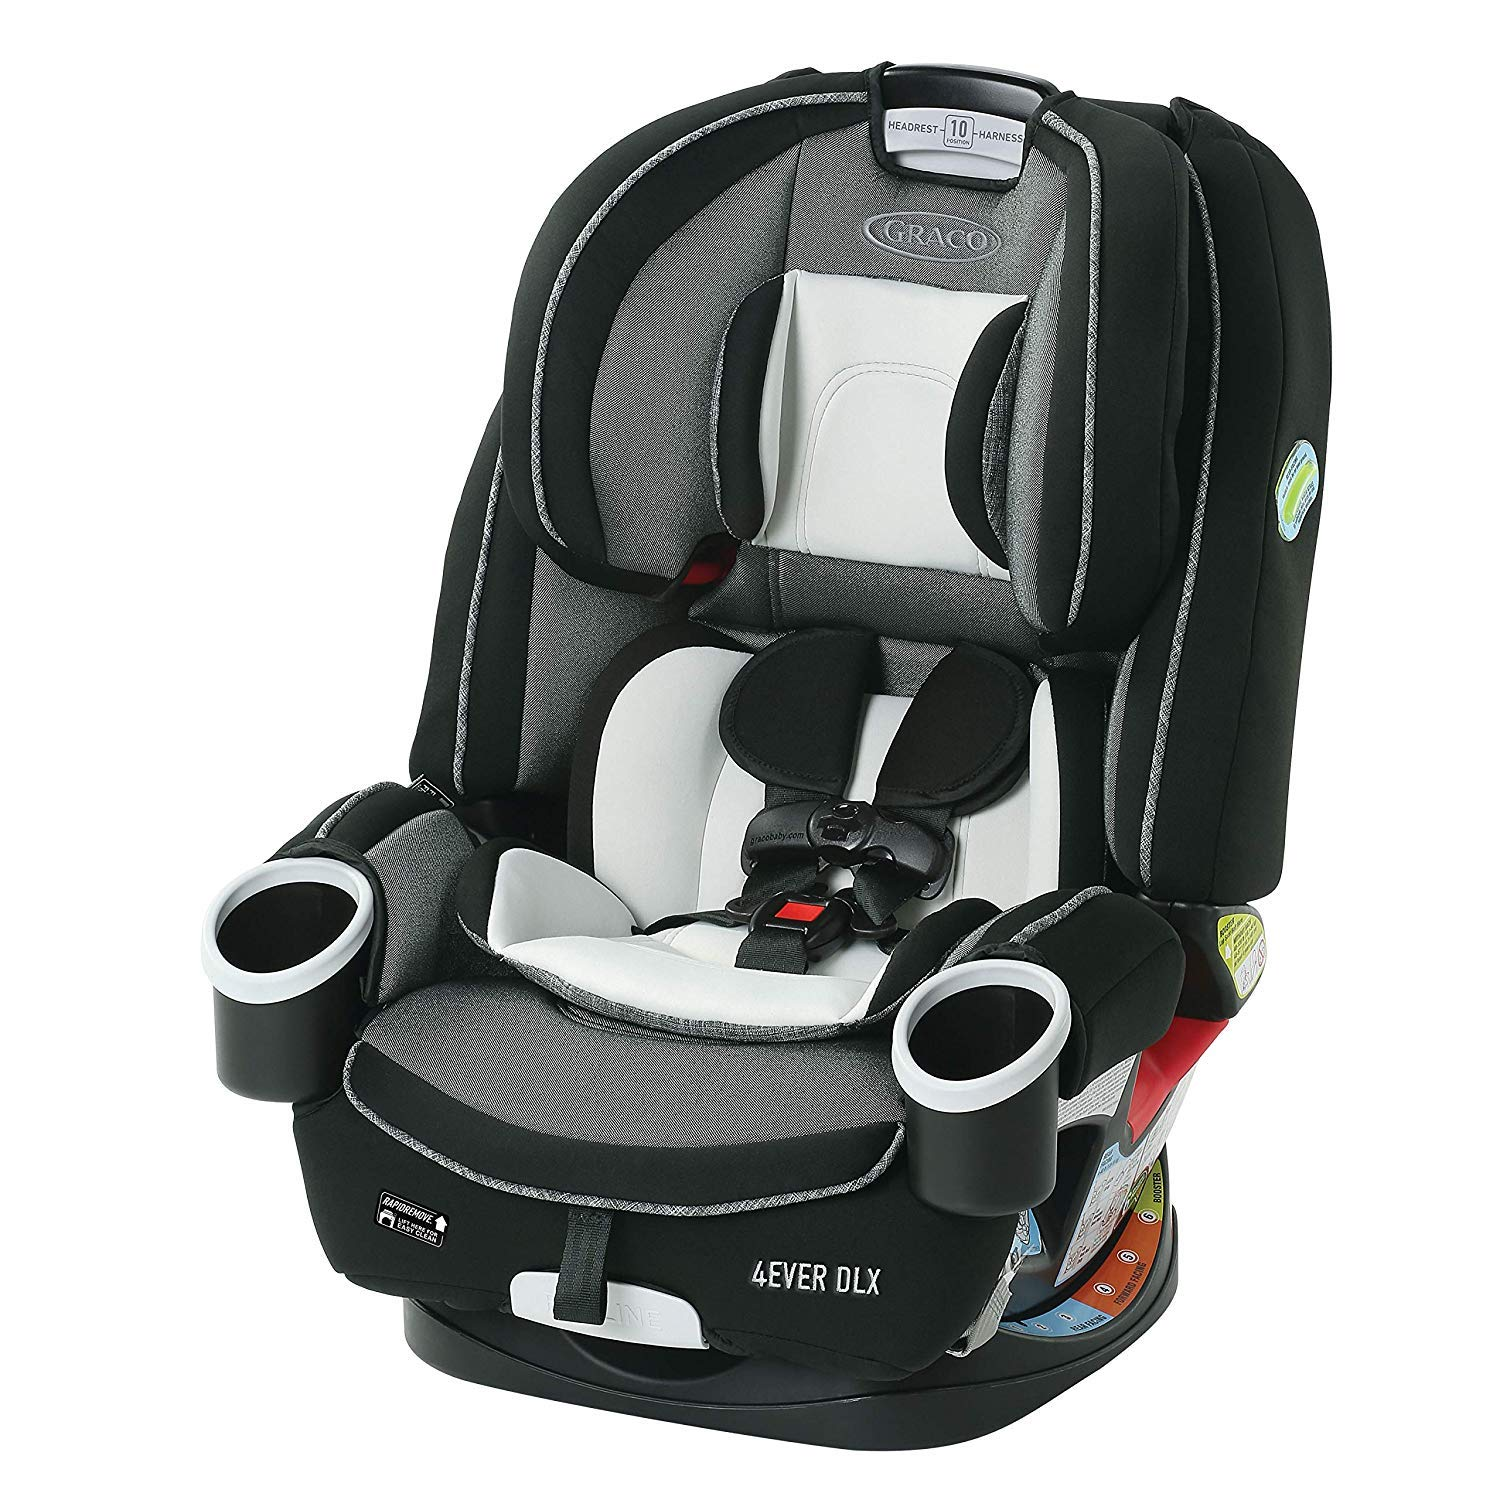 Graco 4Ever DLX Car Seat